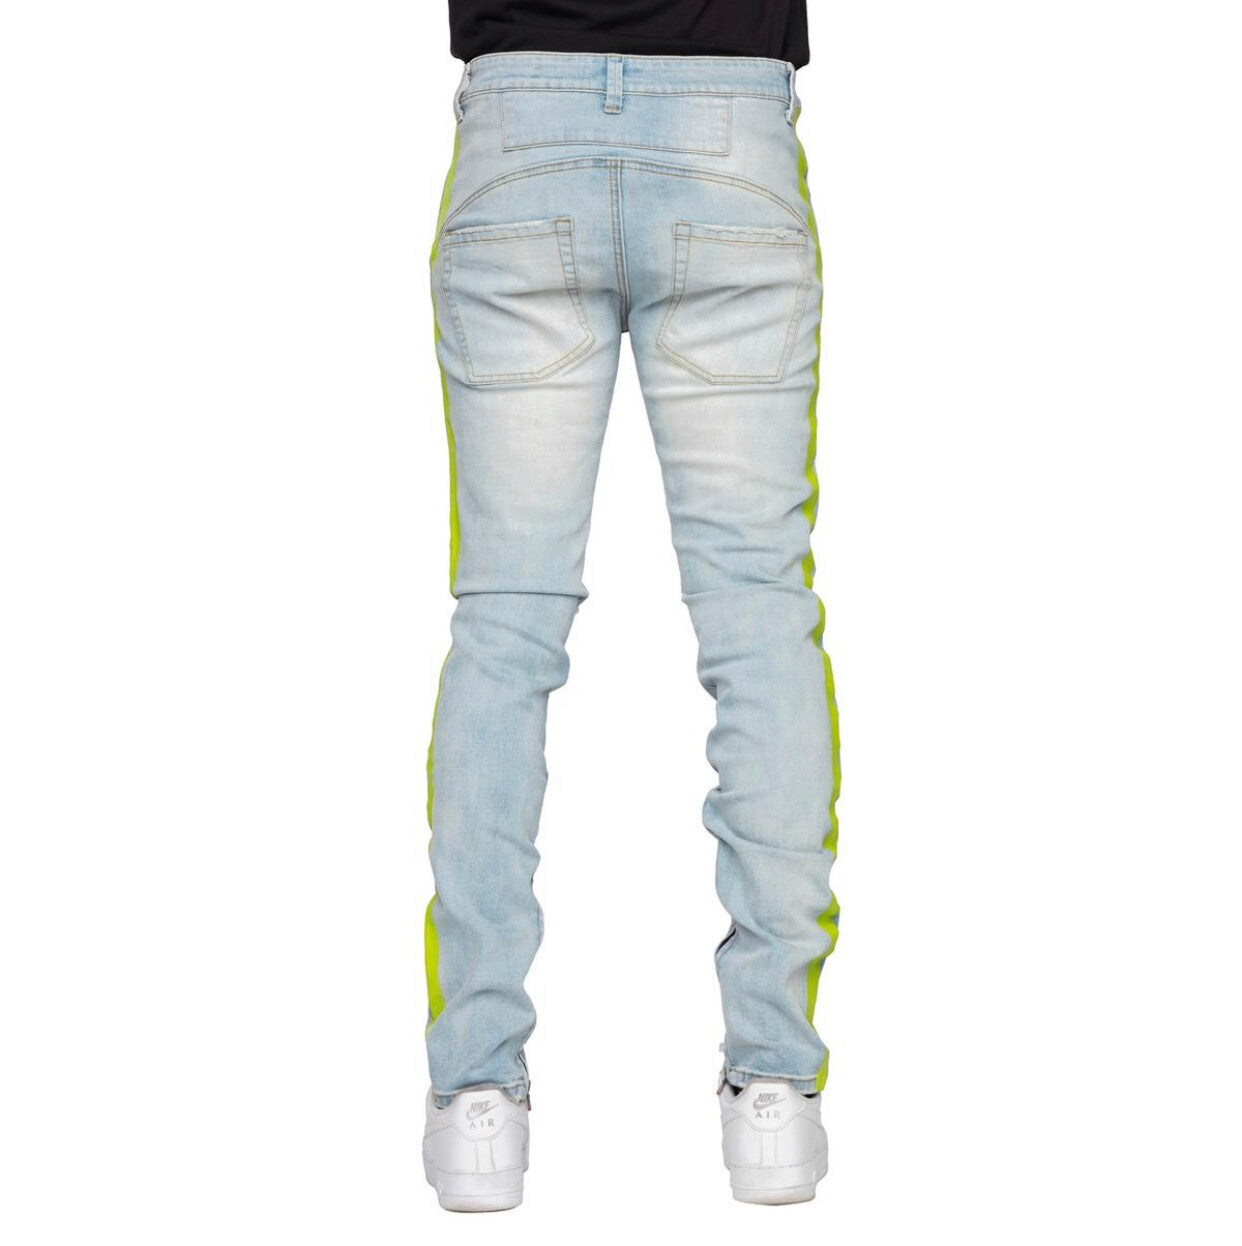 EPTM LT. INDIGO/NEON-PAINTED STRIPE DENIM